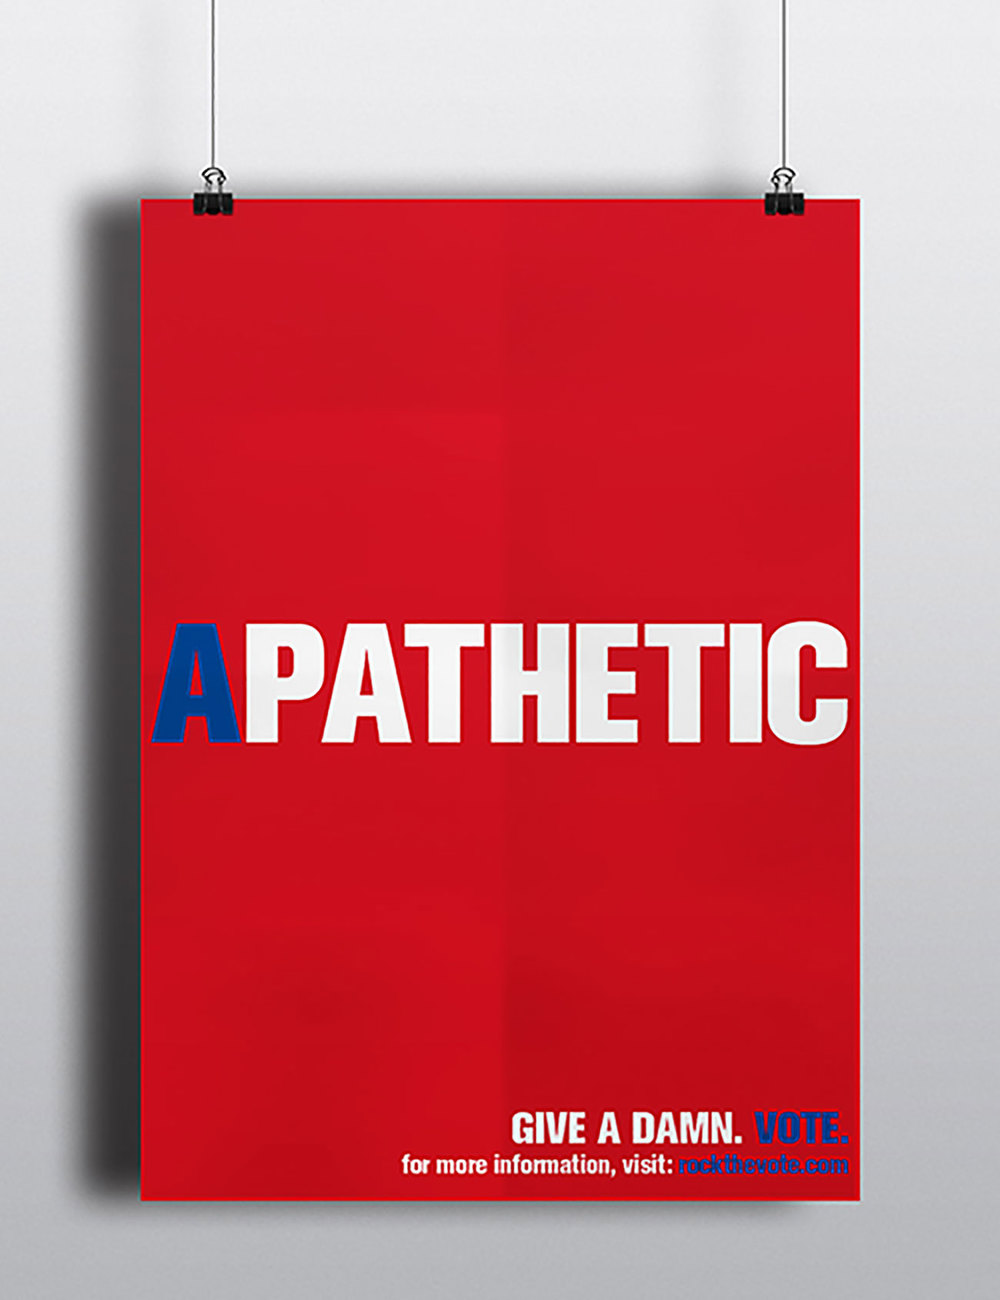 Apathetic / Voting Poster